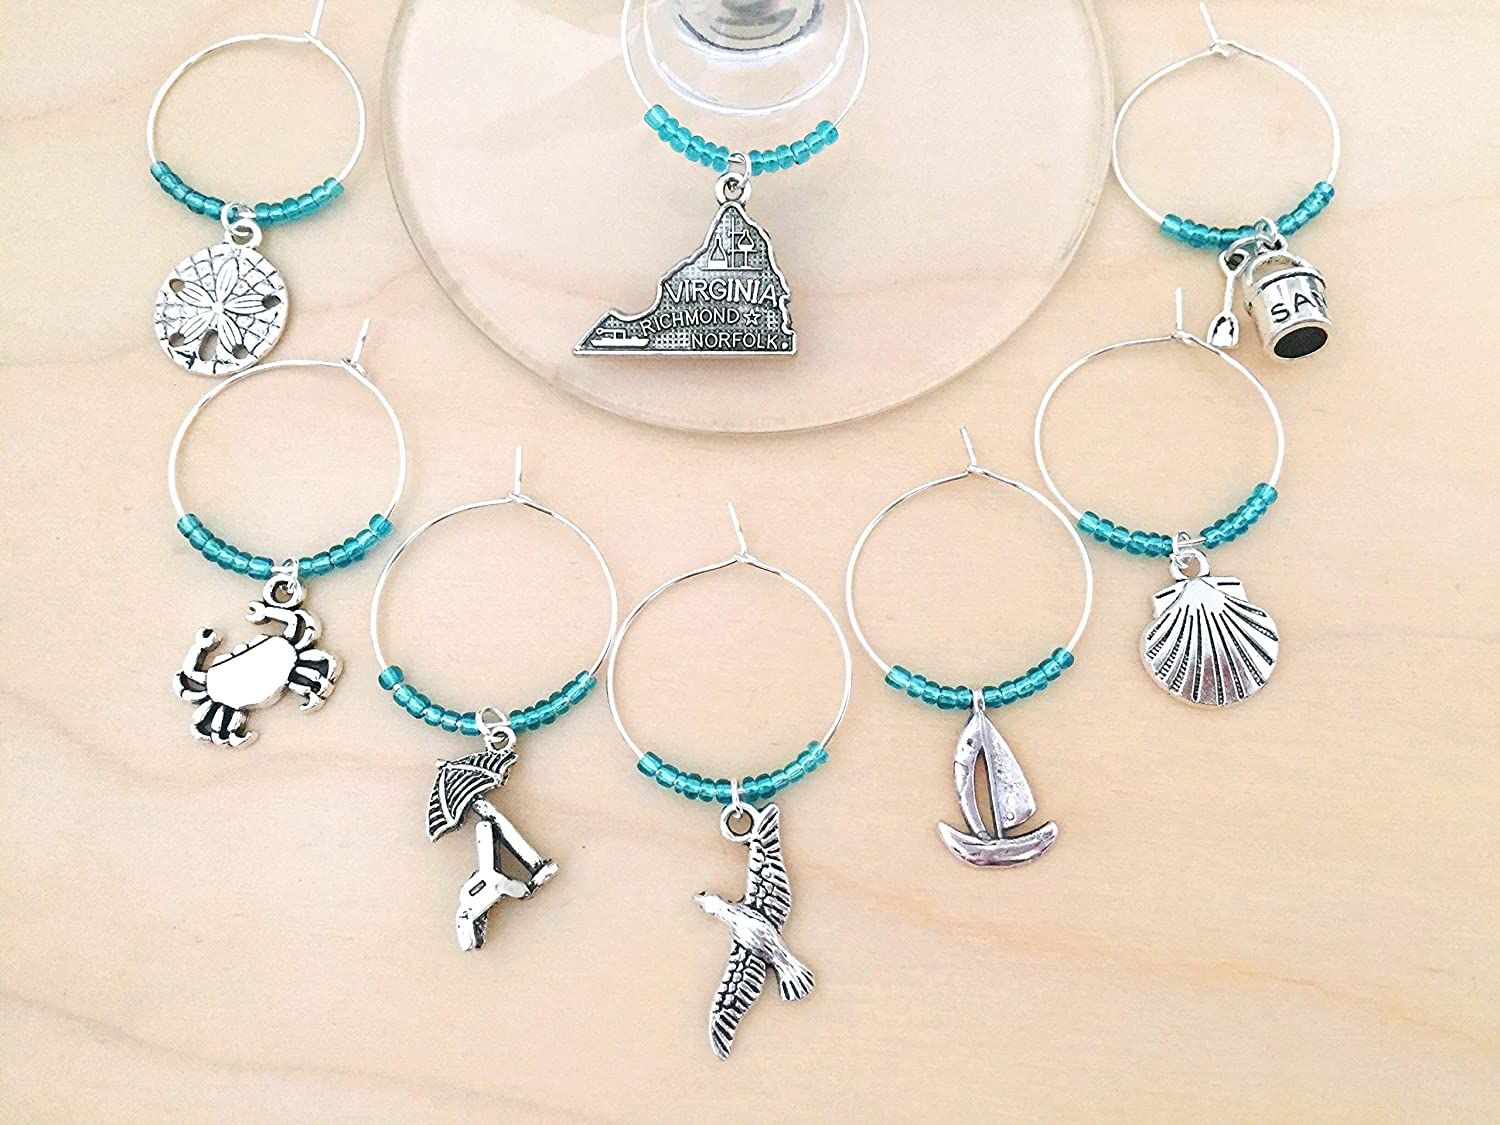 SALE Virginia Beach 5% OFF Themed Wine Charms Gift for Virginian bea Dealing full price reduction